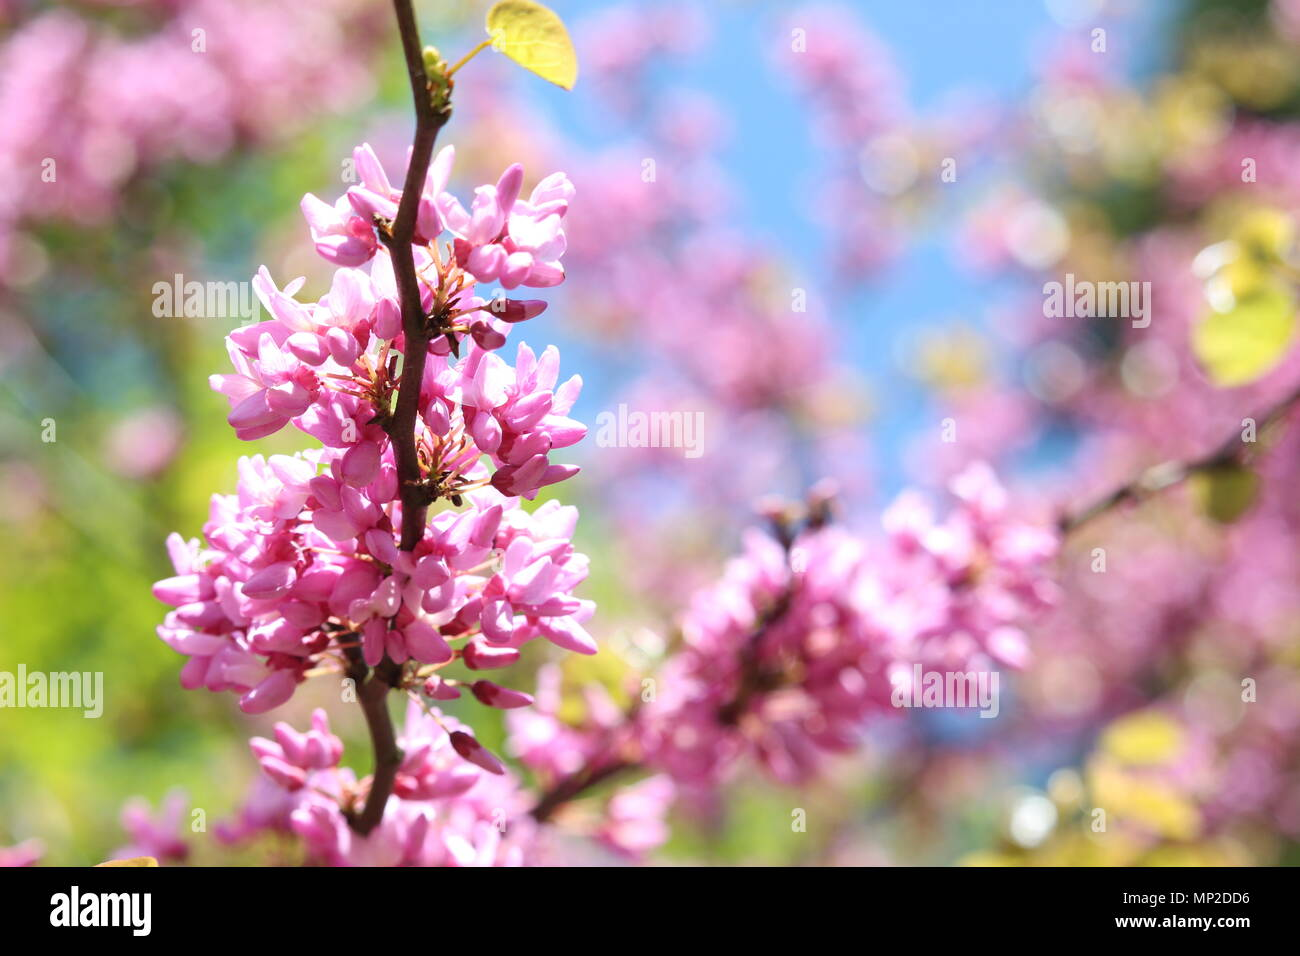 A beautiful close up photo, shallow depth of field, of pink cherry blossom, weeping cherry tree, against blue summer sky and fresh green foliage Stock Photo